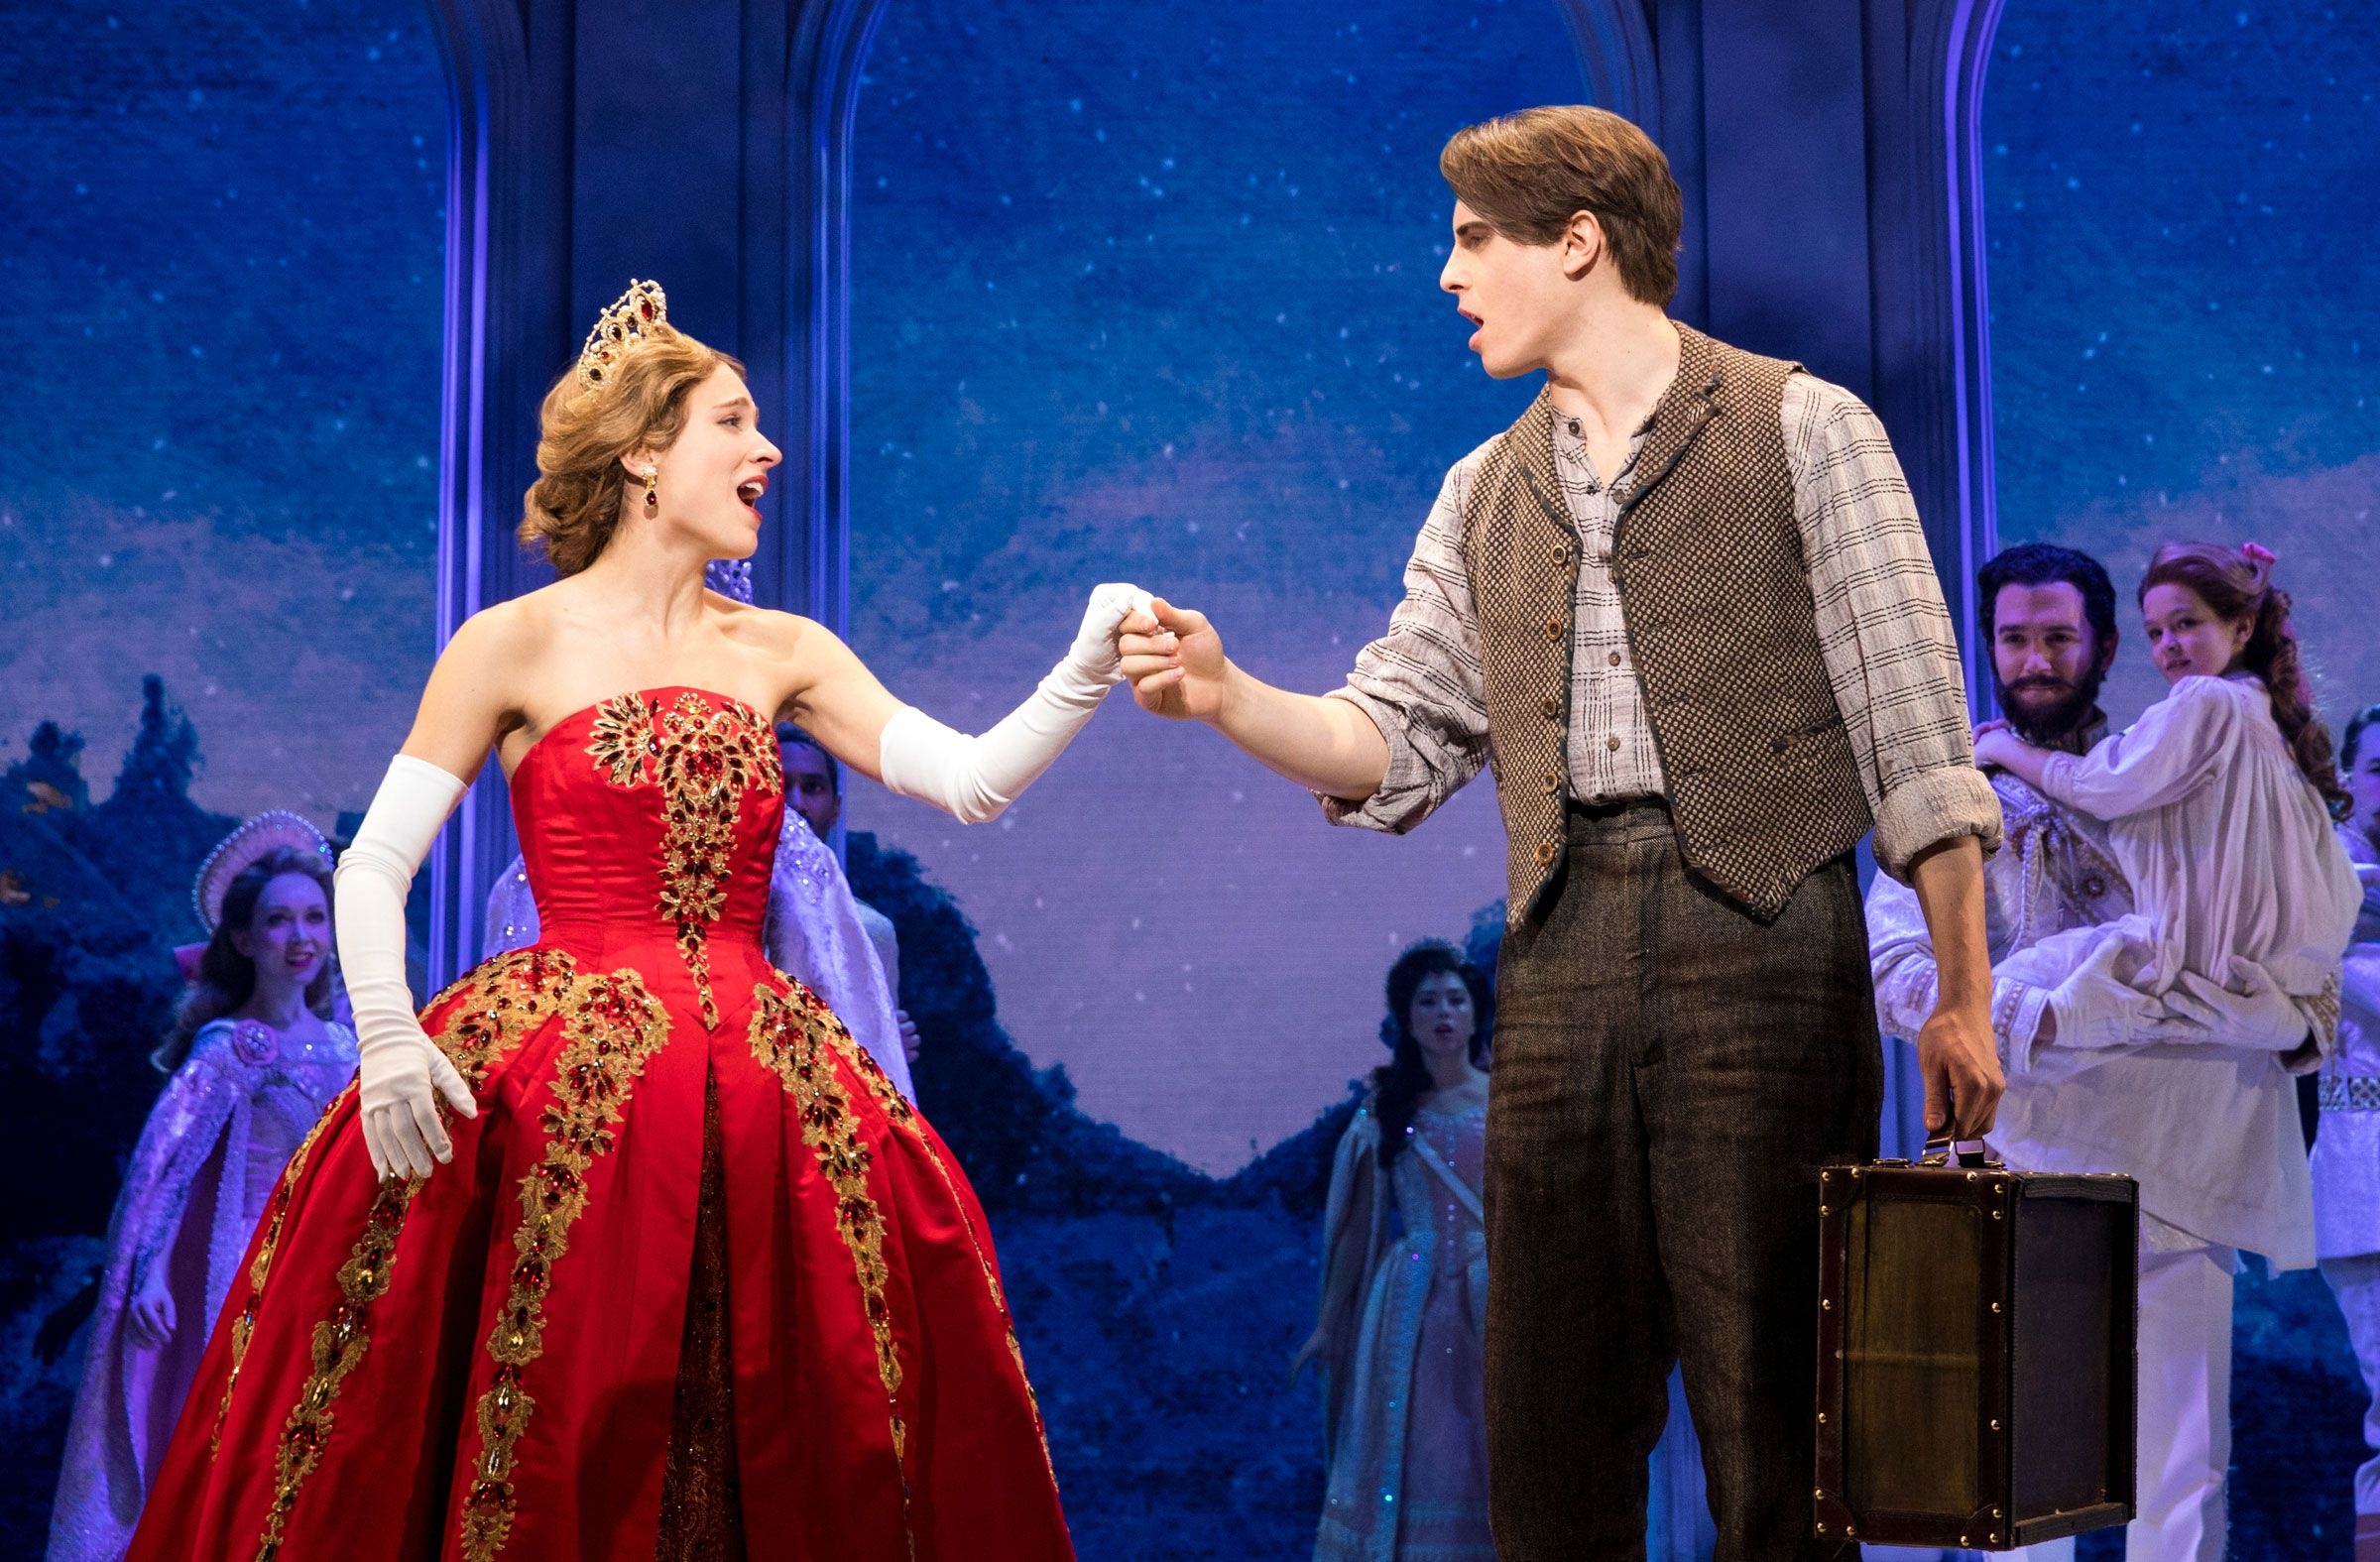 How Christy Altomare Got Her Start - Christy Altomare as Anastasia